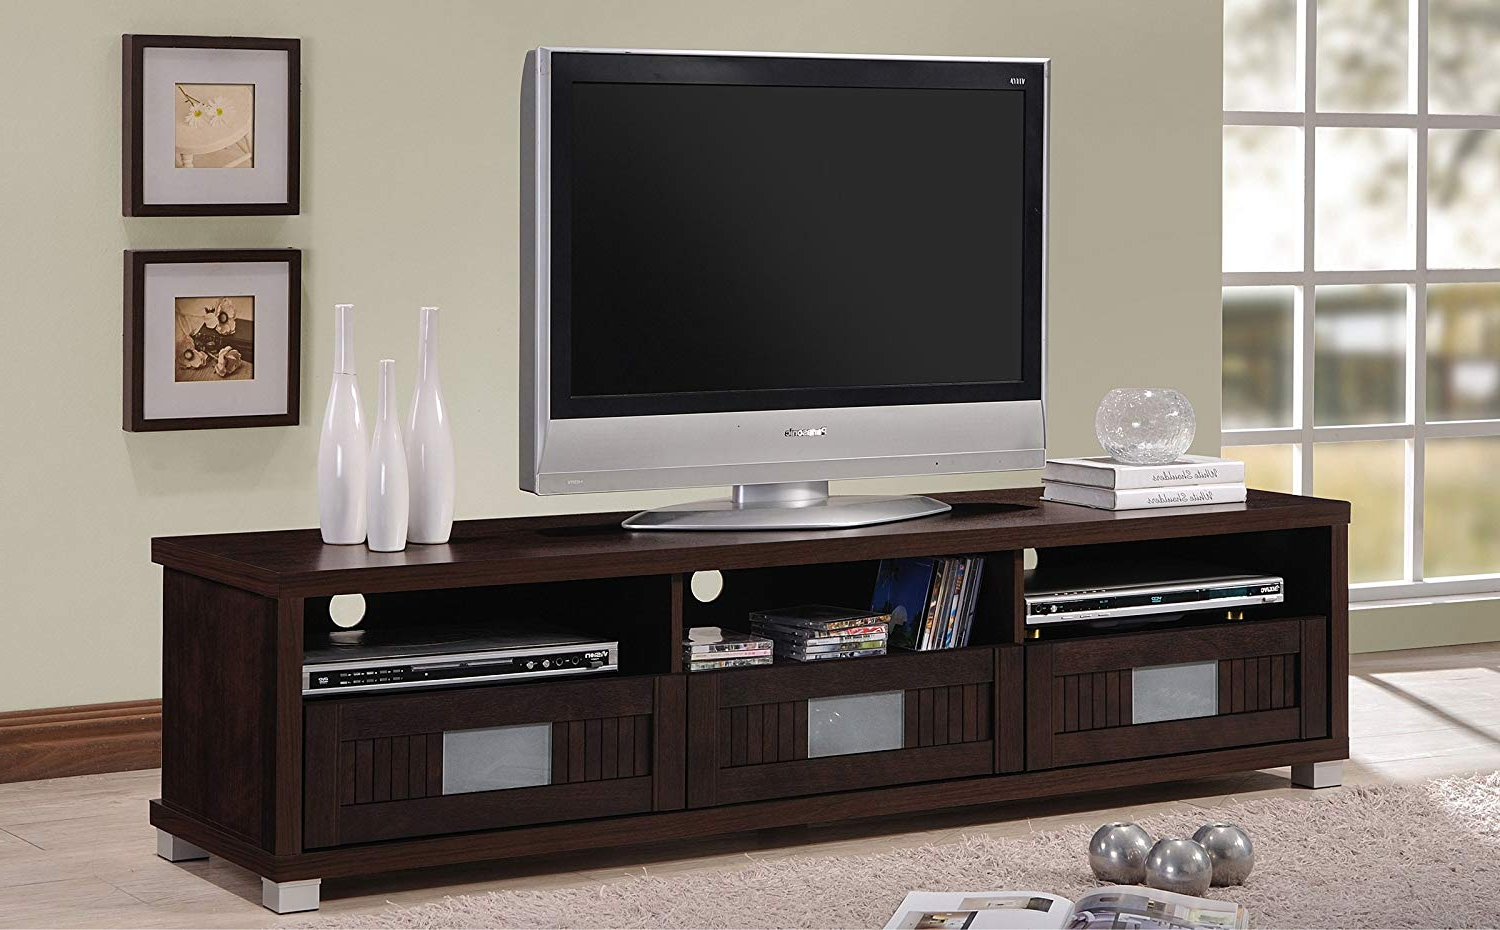 Latest Wooden Tv Stands With Doors Throughout Amazon: Wholesale Interiors Baxton Studio Gerhardine Wood Tv (Gallery 11 of 20)